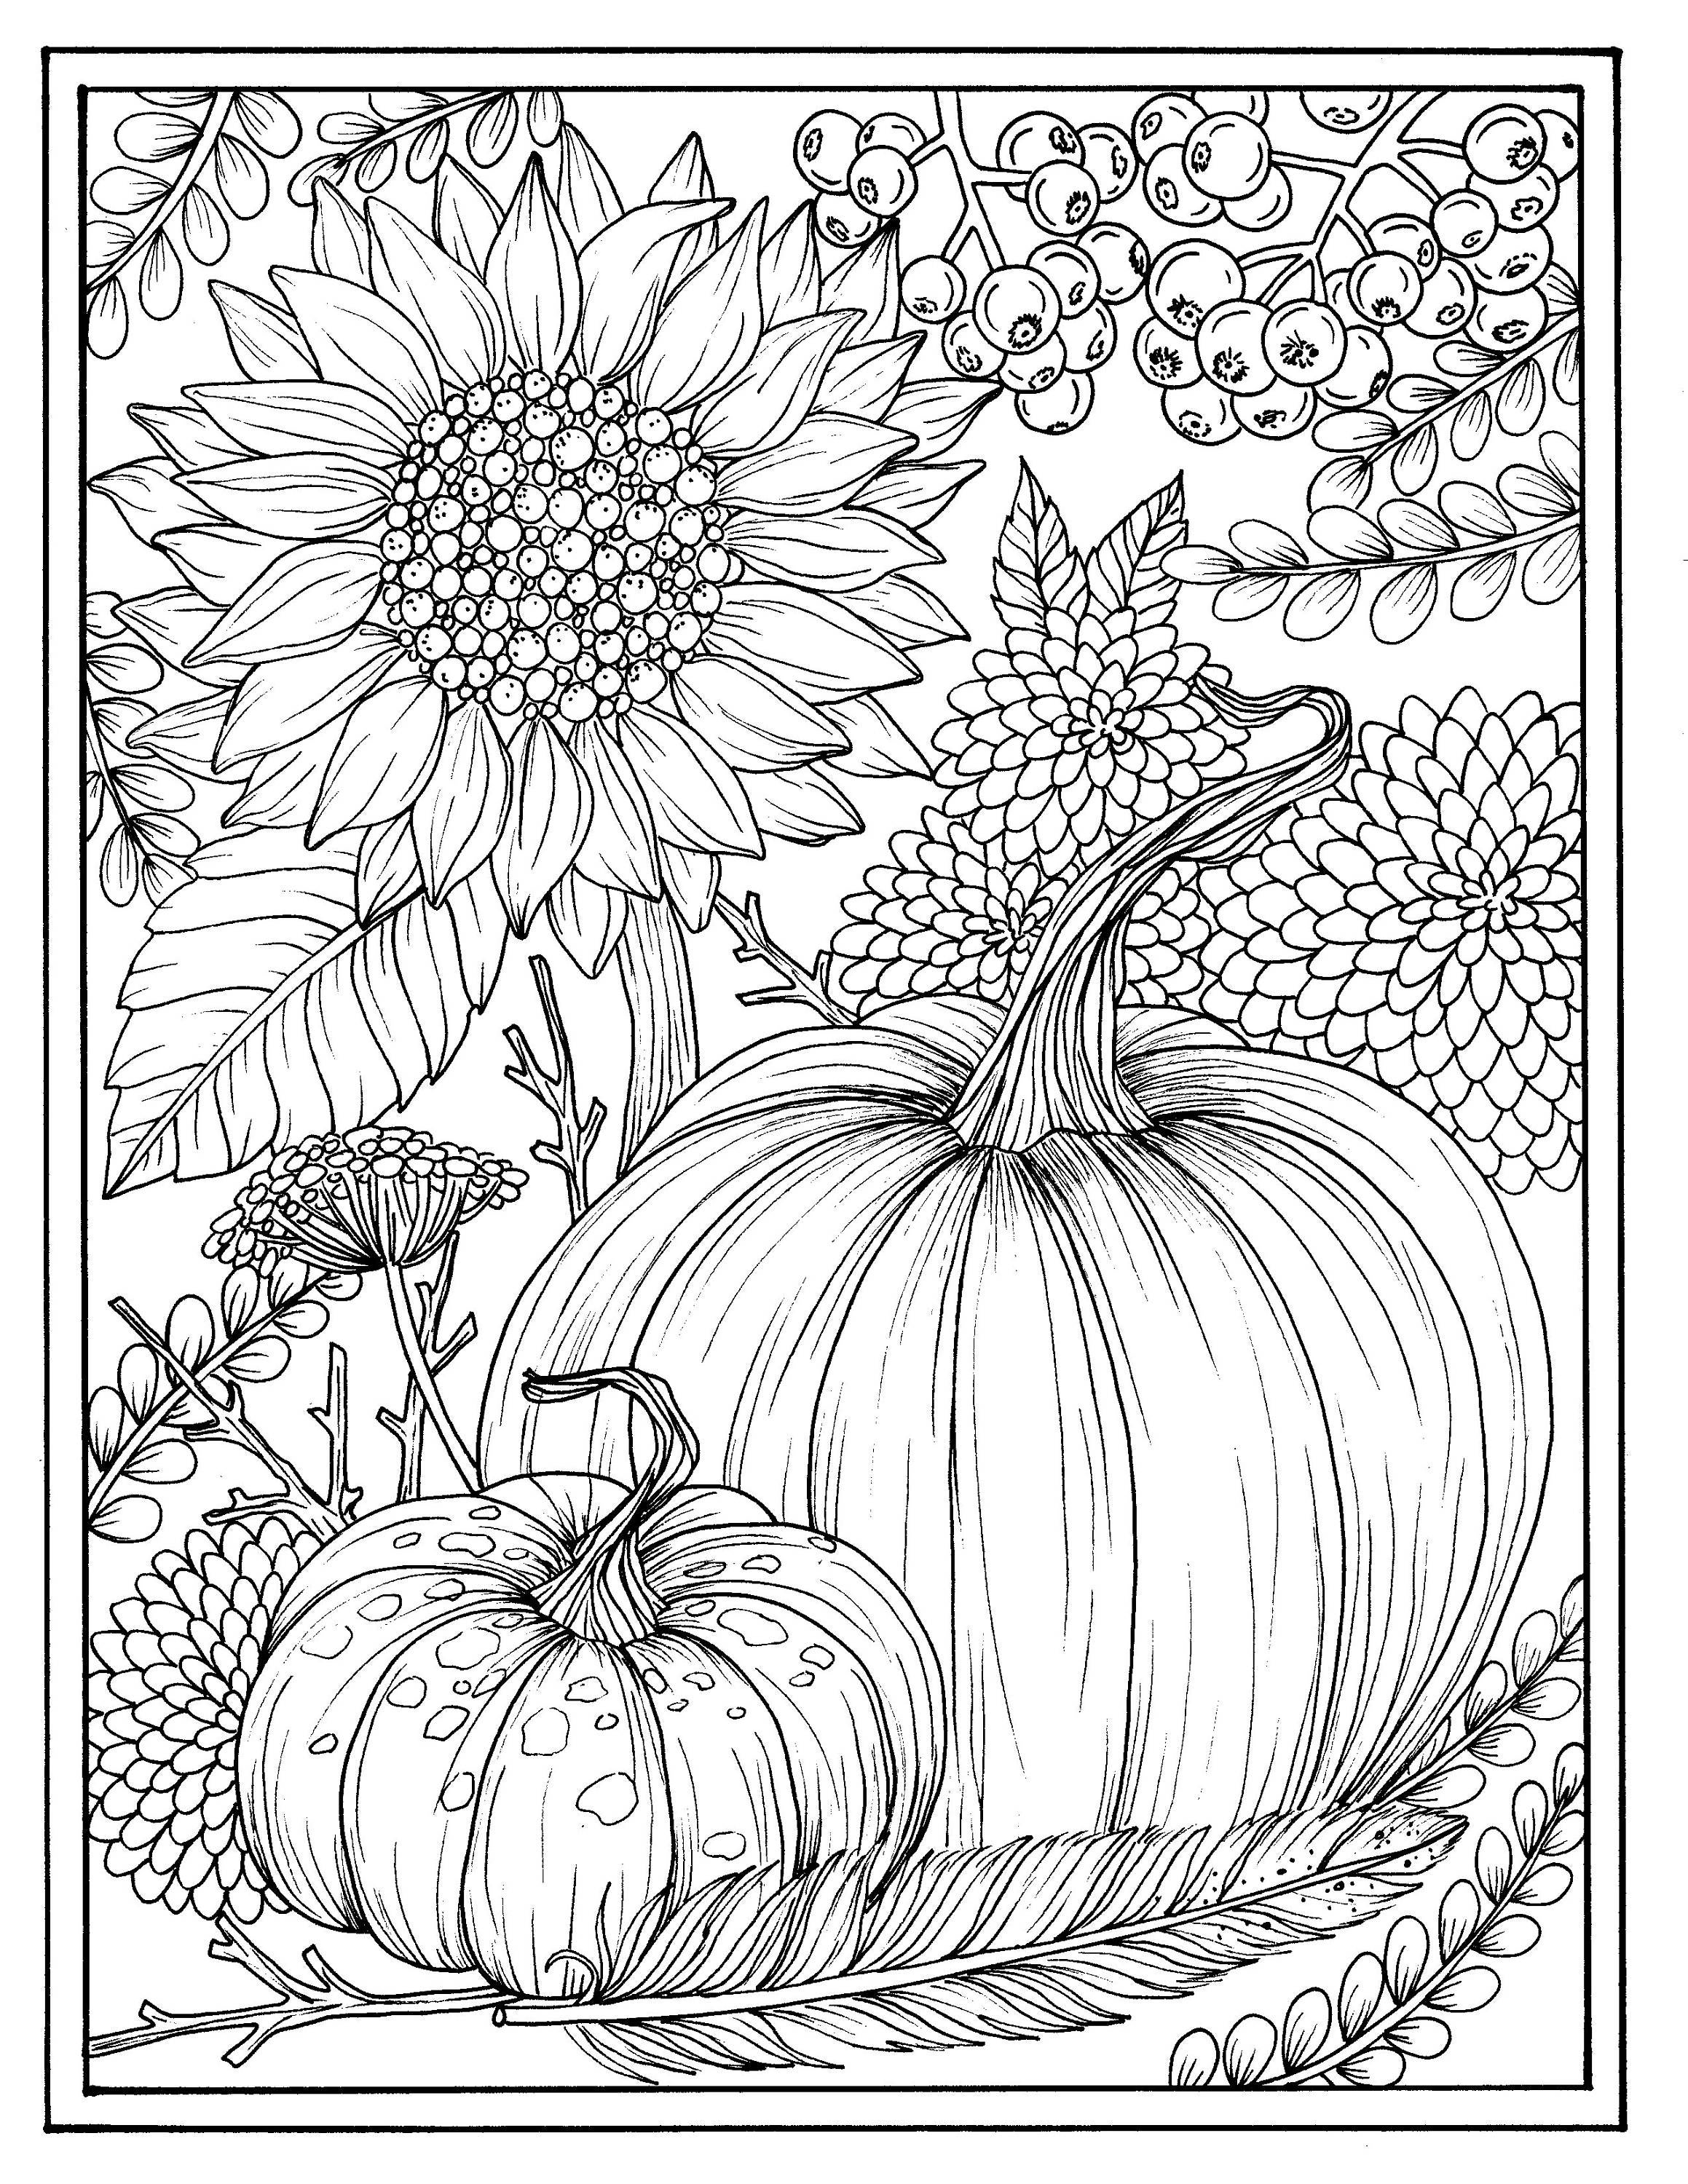 electronic coloring book for adults fall flowers and pumpkins digital coloring page electronic adults coloring for book